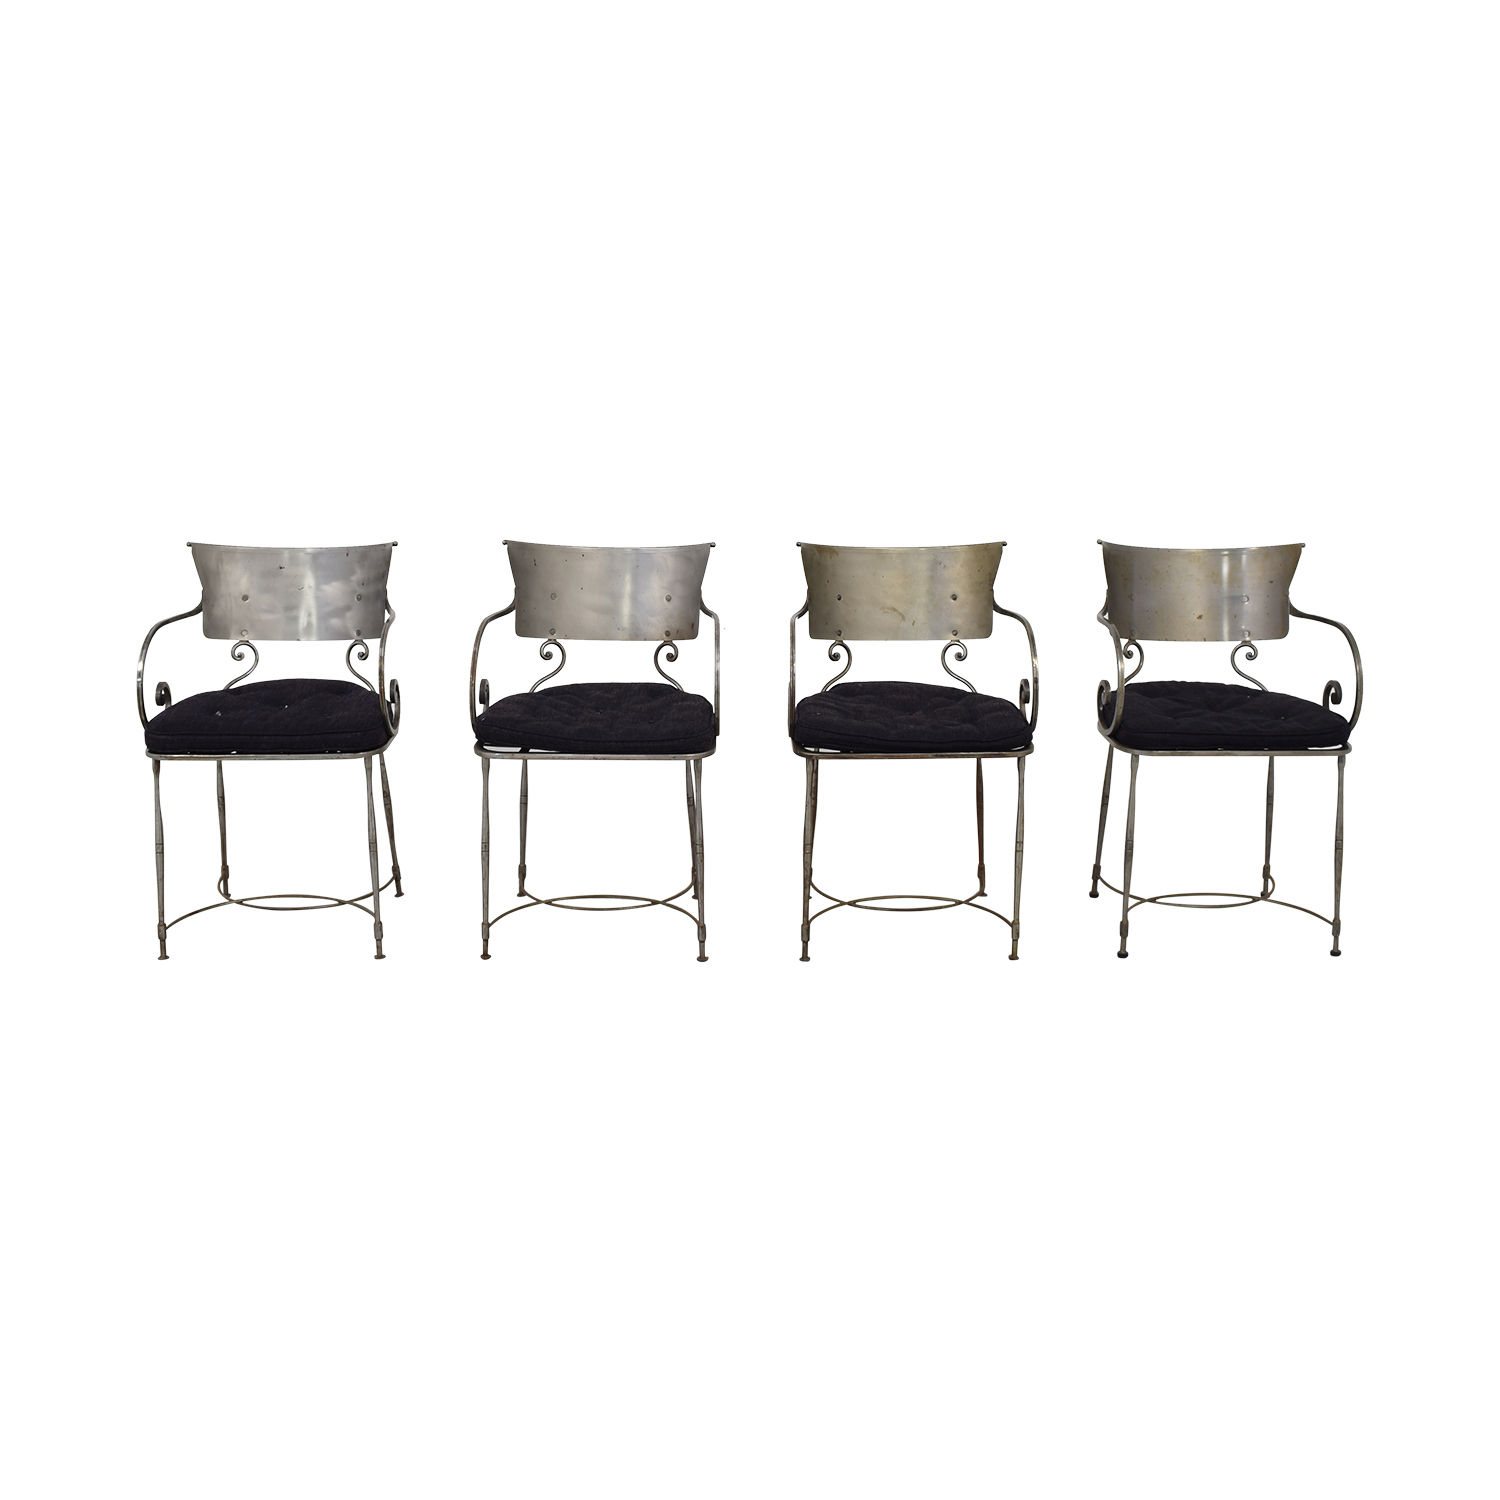 Bloomingdale's Bloomingdale's Four Metal Dining Chairs second hand